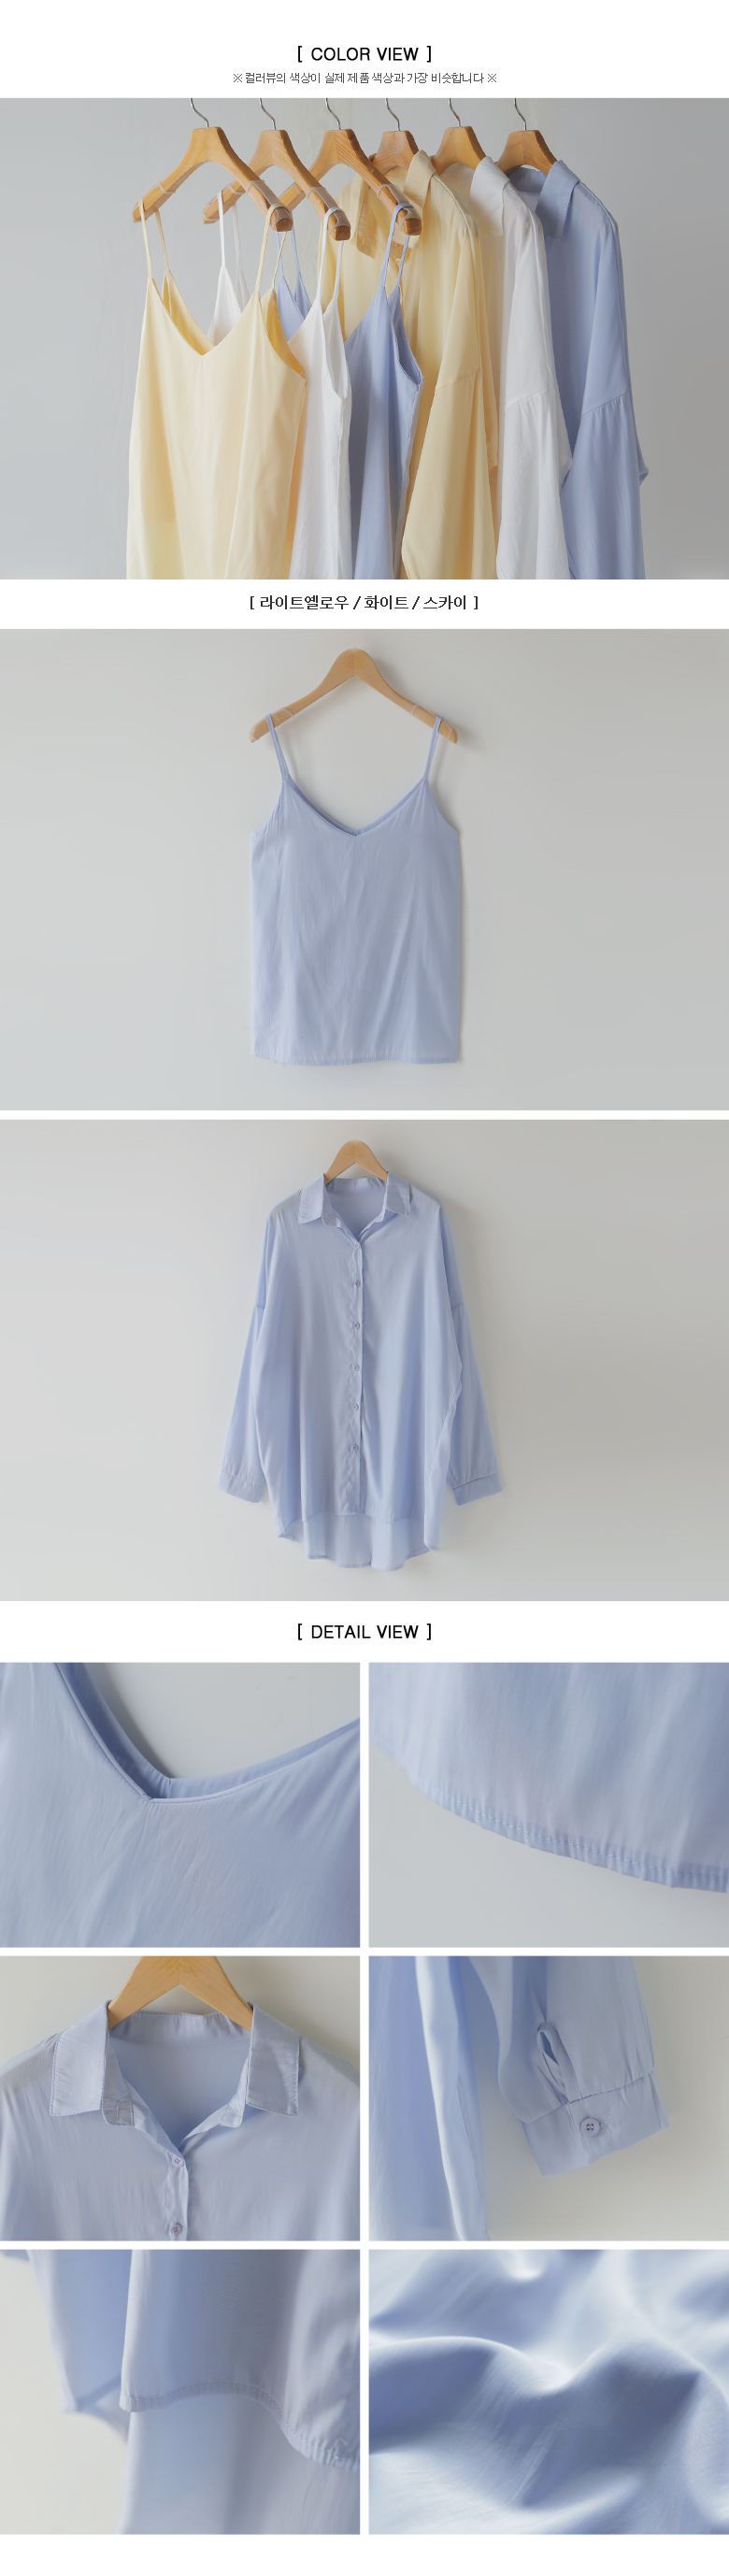 Venetian silk shirt Shirt Set